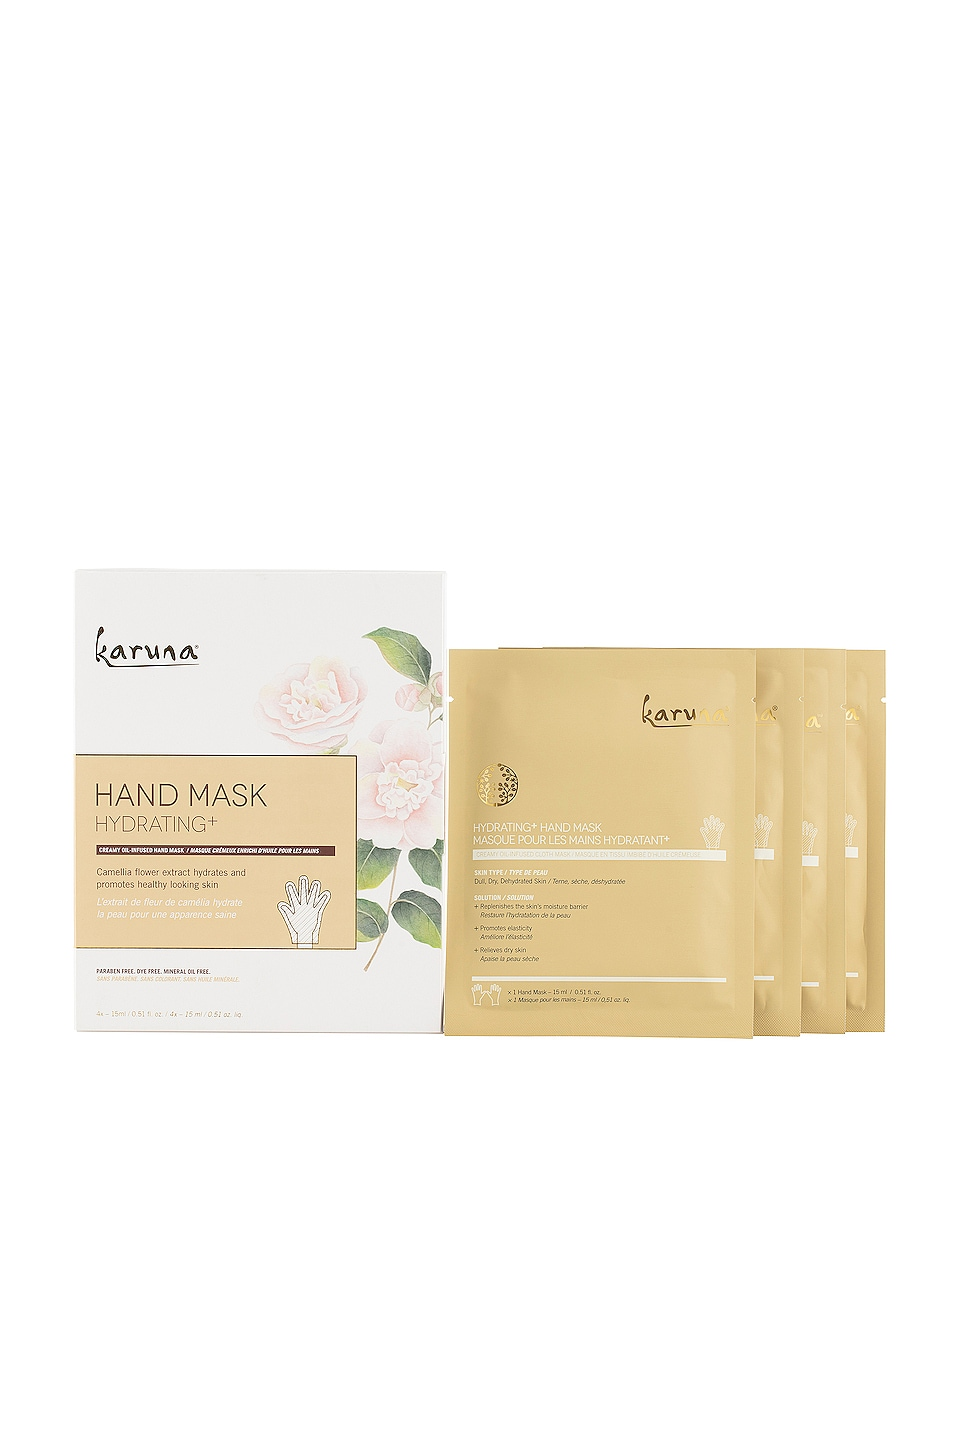 Karuna Hydrating+ Hand Mask 4 Pack